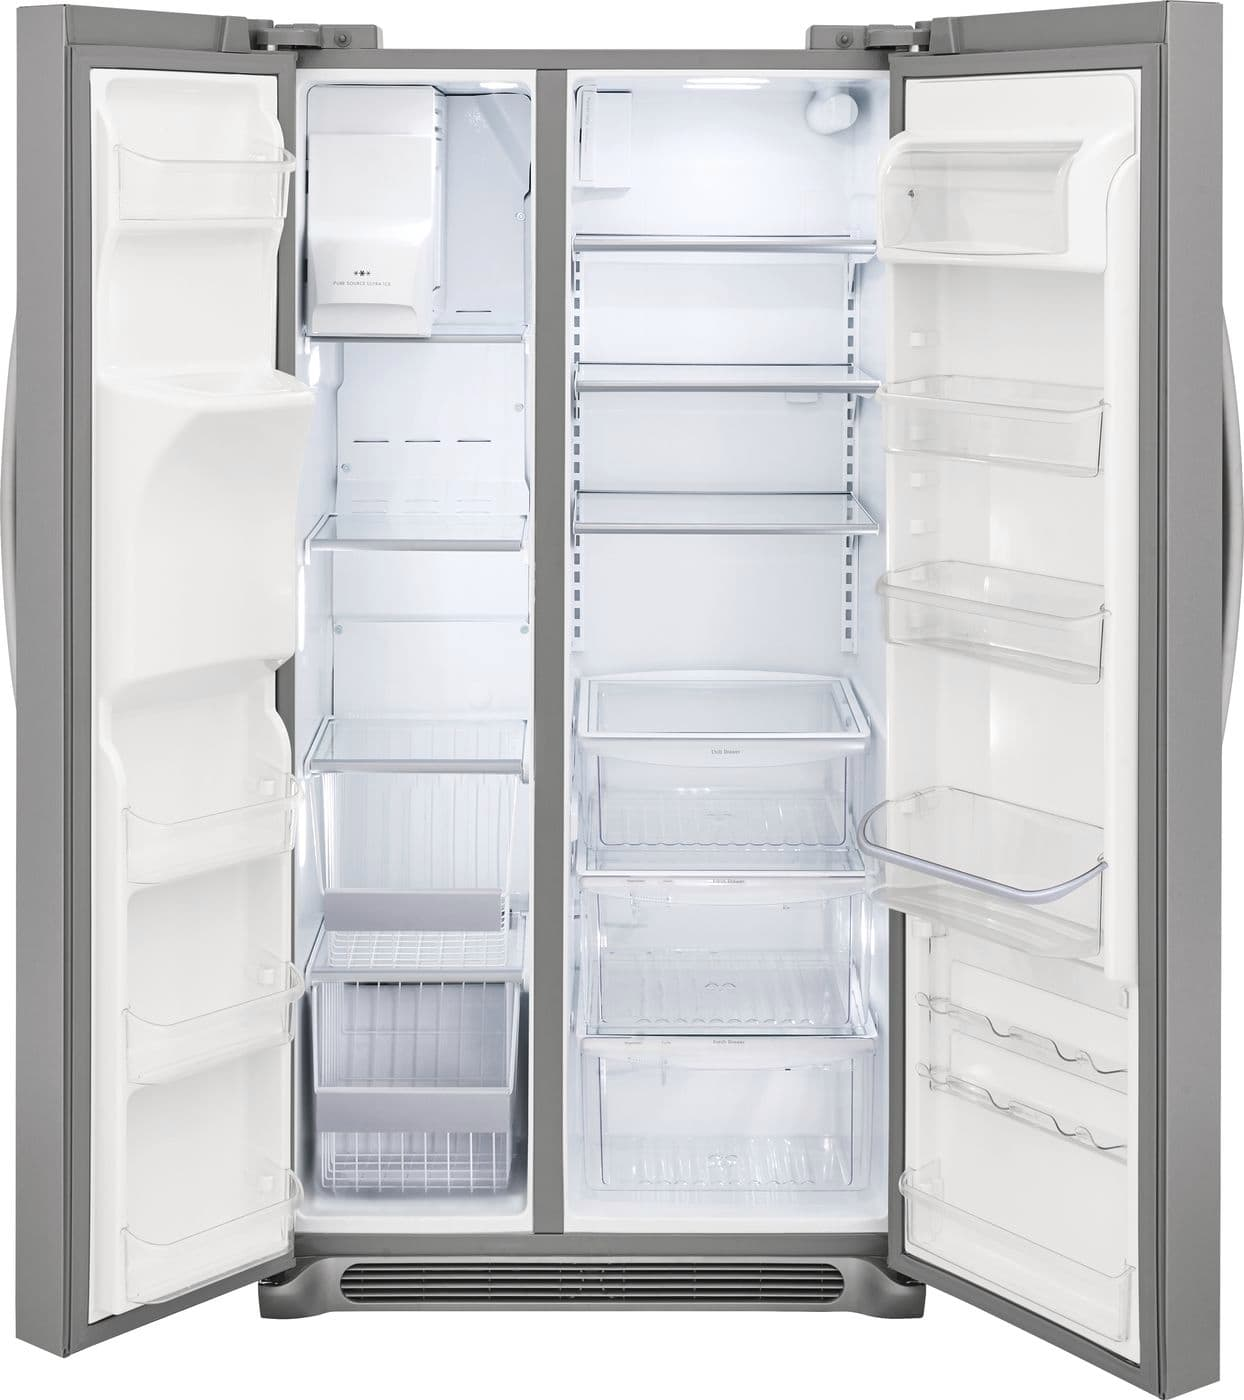 Model: FGSC2335TF | Frigidaire Gallery 22.2 Cu. Ft. Counter-Depth Side-by-Side Refrigerator